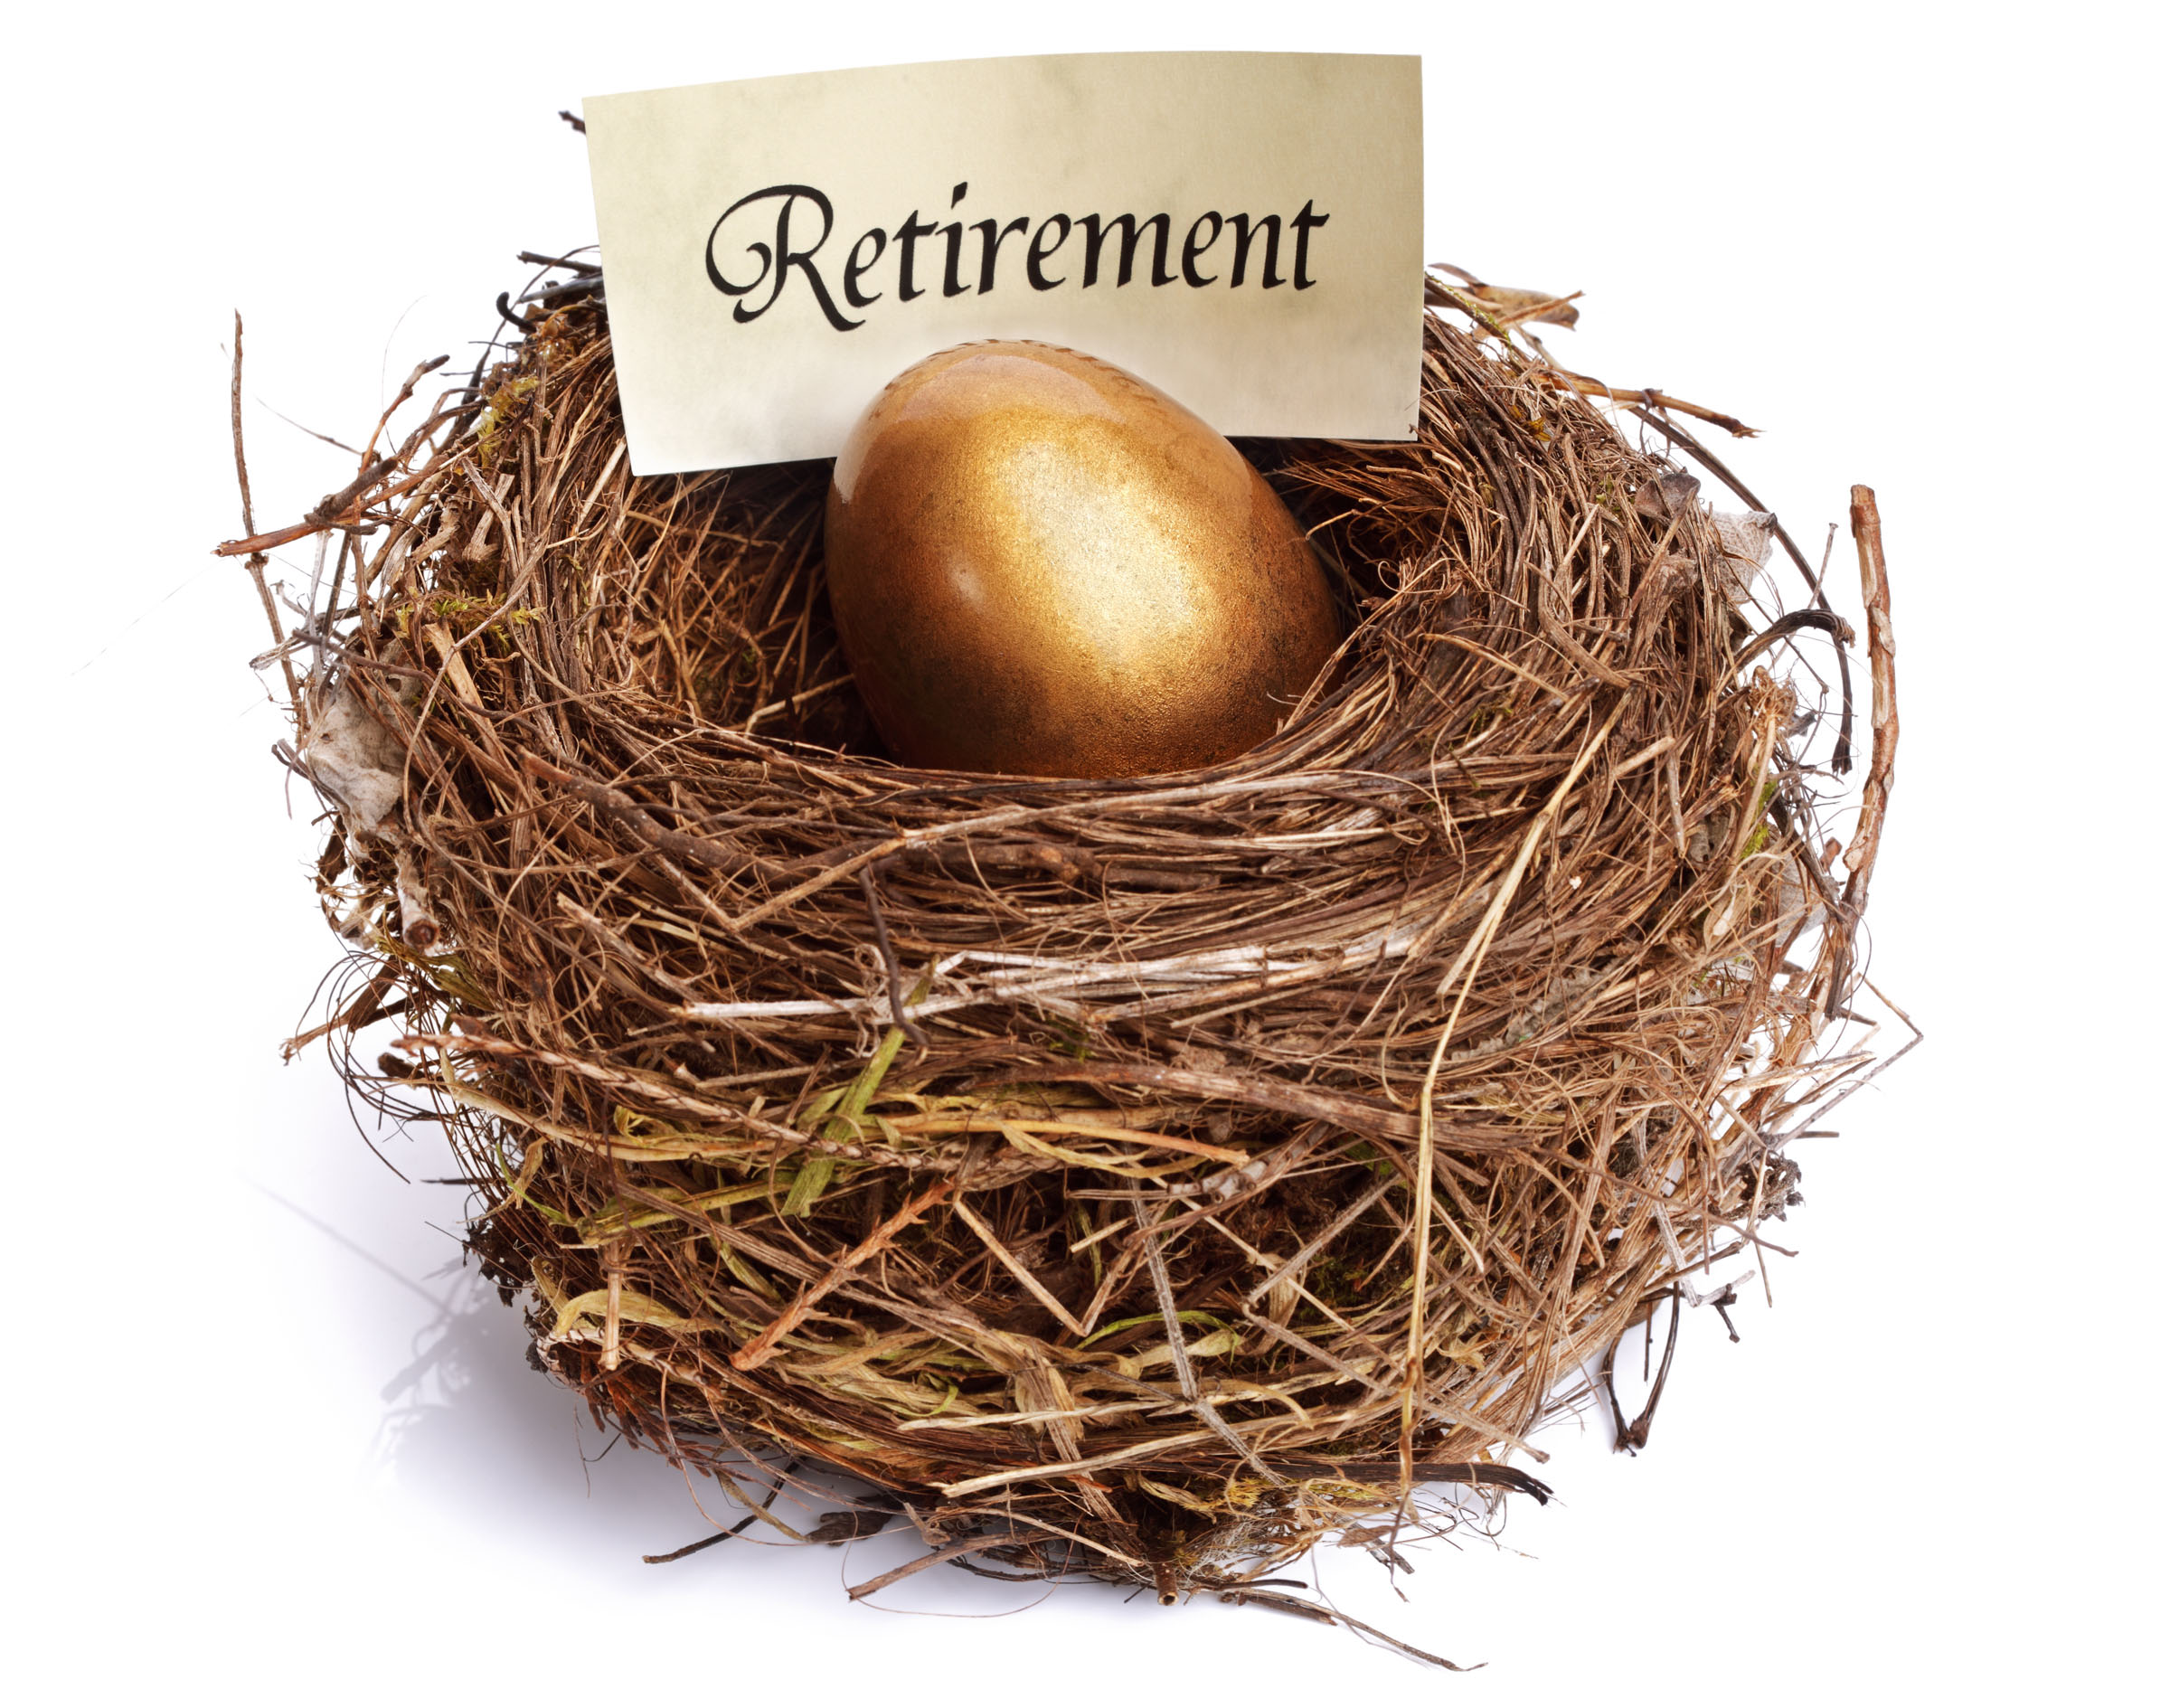 superannuation and retirement essay Need to write a farewell speech for a retiring teacher and don't know how to go about it find sample goodbye or retirement speech below.